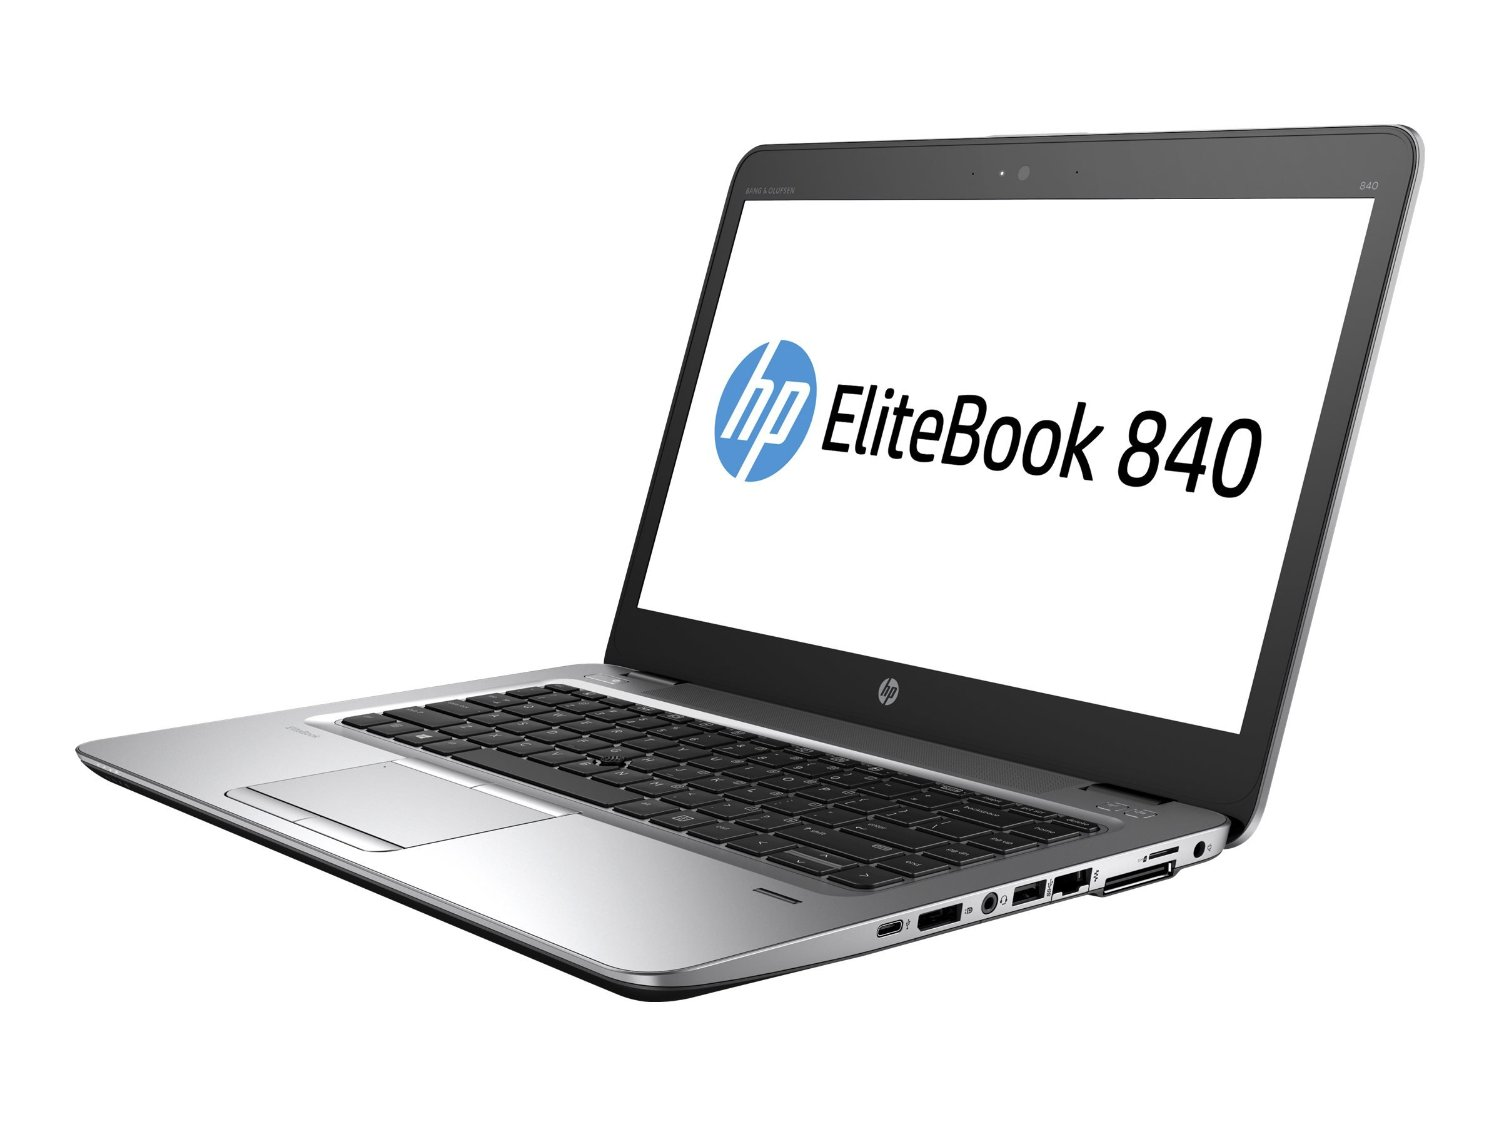 HP Elitebook 840 G4